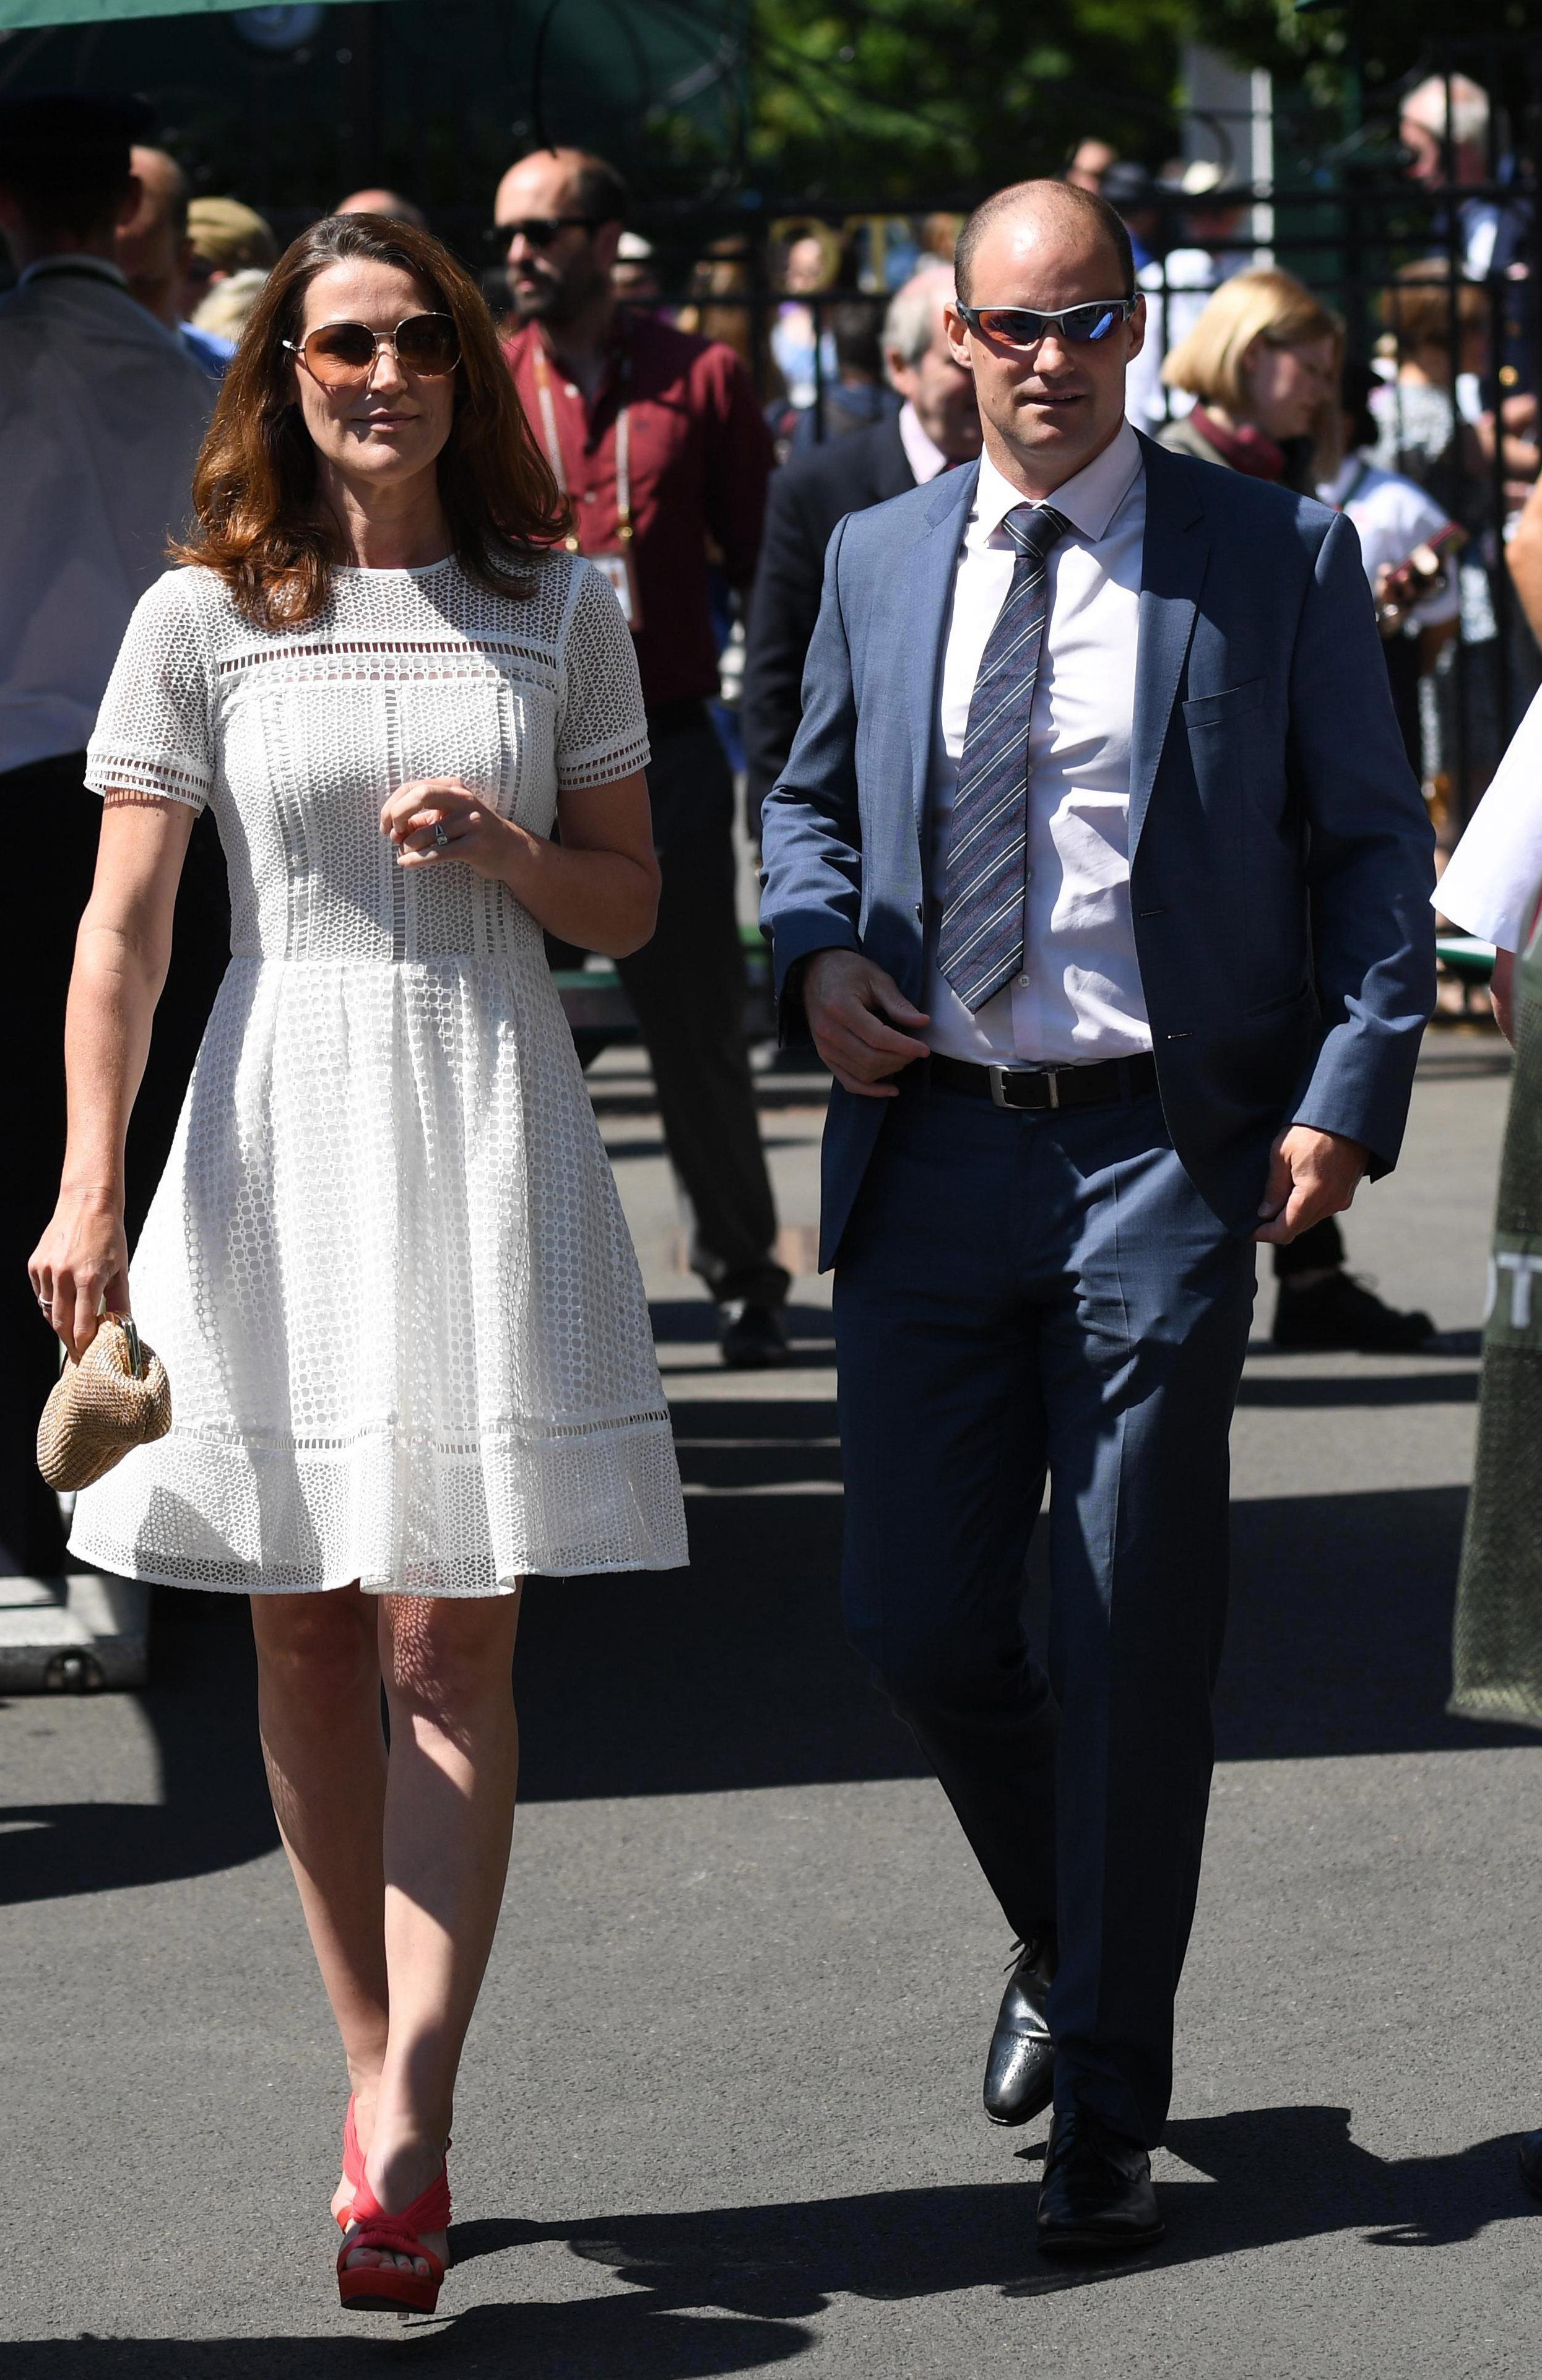 Andrew Strauss and wife Ruth have often been seen at Wimbledon